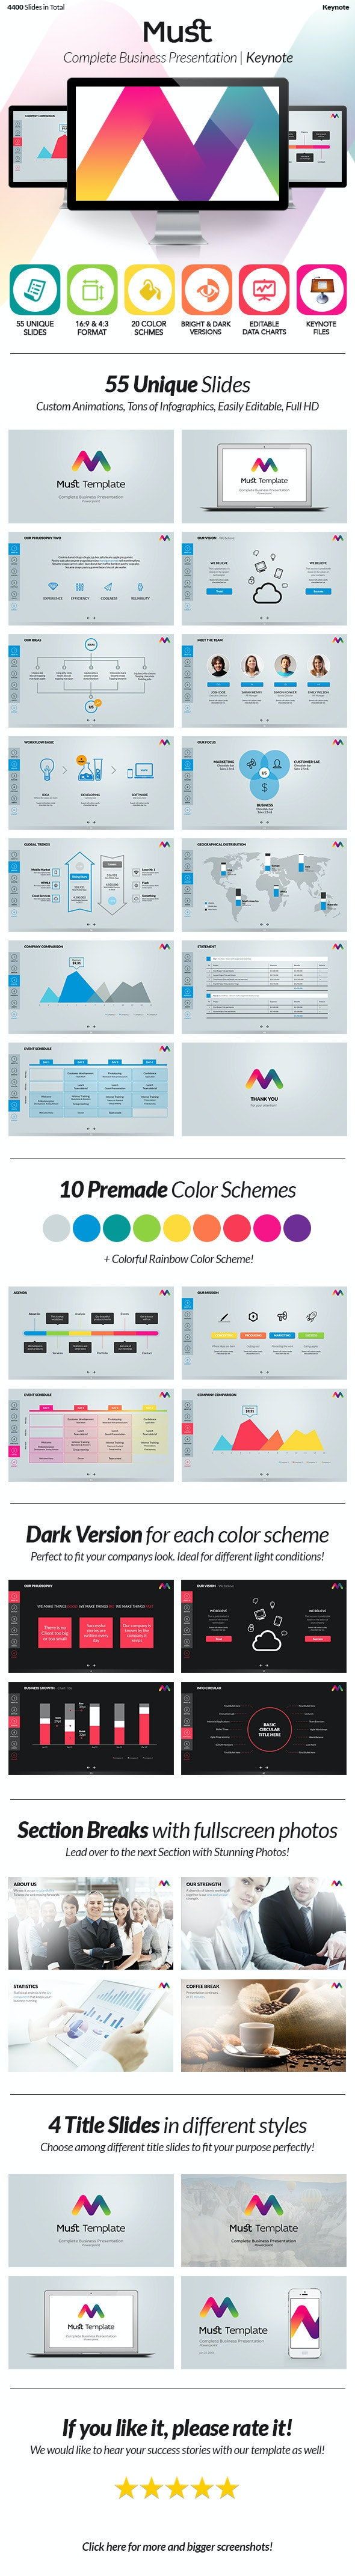 Must Keynote - Complete Business Template - Keynote Templates Presentation Templates